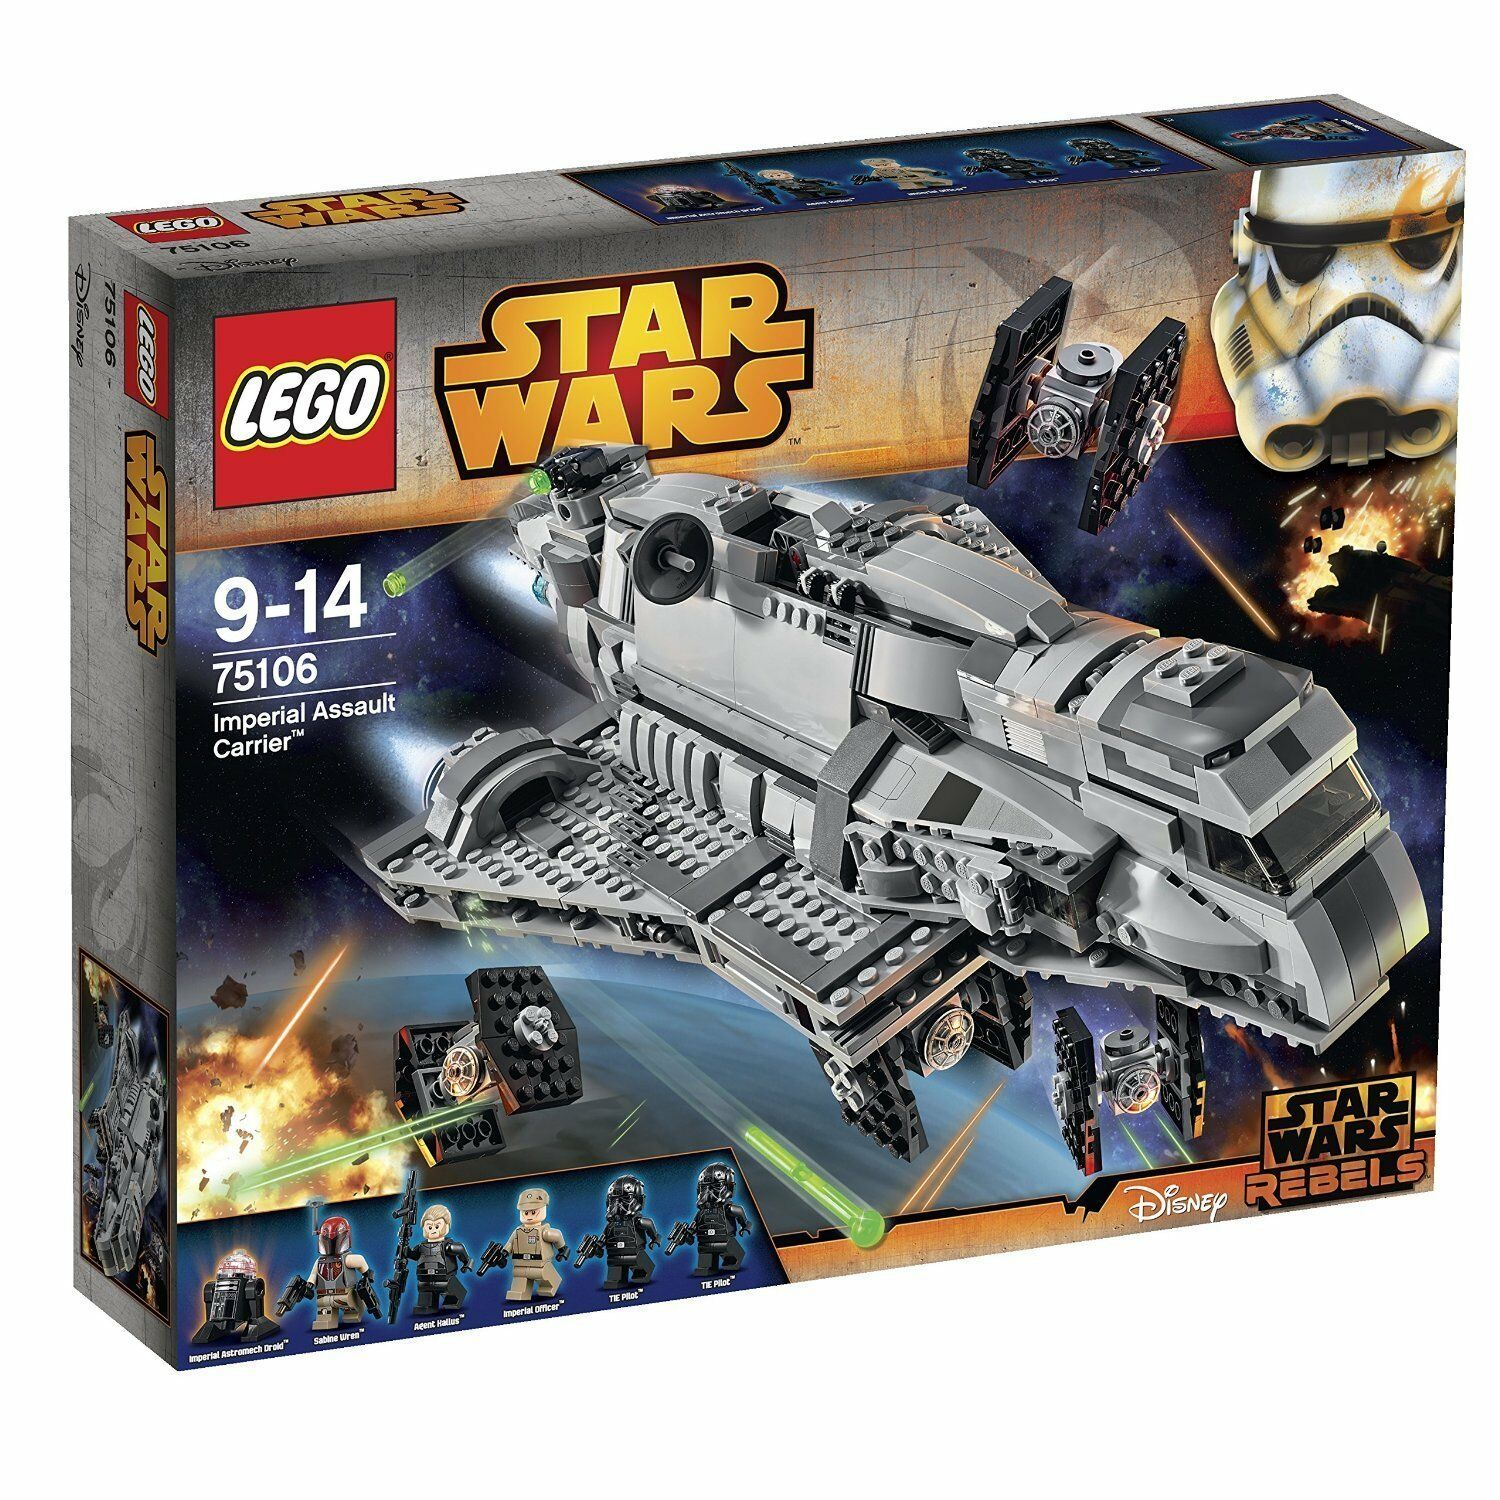 Lego ® Estrella Wars ™ 75106 imperial Assault Cocherier ™ nuevo New OVP misb